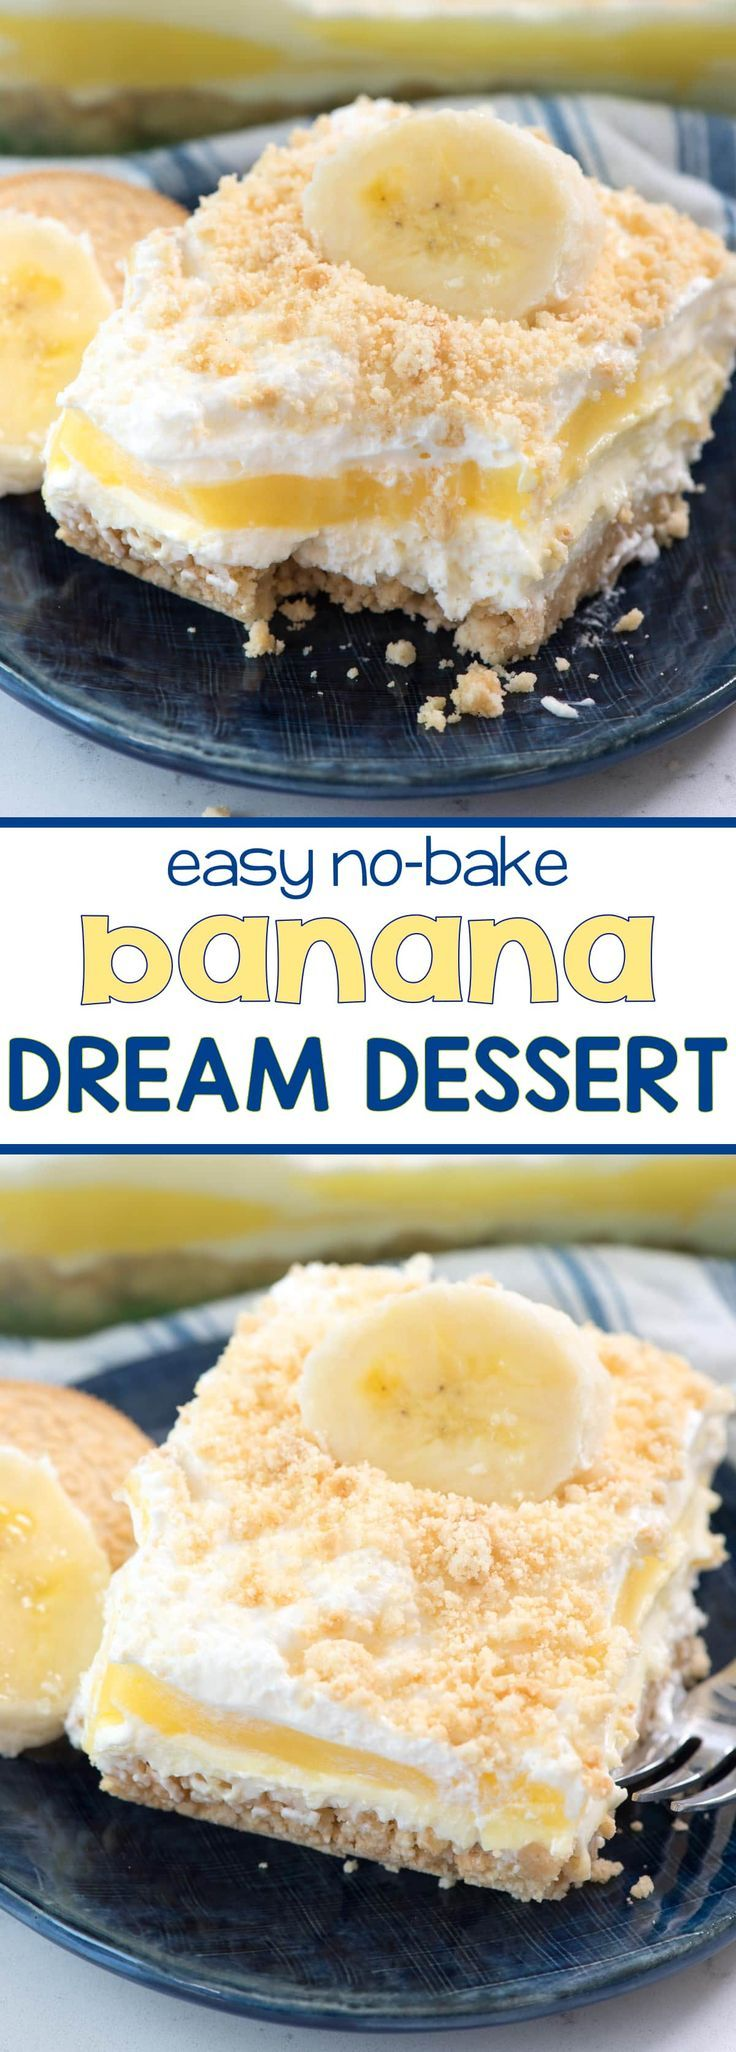 No Bake Banana Pudding Dream Dessert - this easy dessert lasagna recipe is made with BANANA pudding! It's layered with no bake cheesecake and a Golden Oreo Crust! (Dessert Recipes No Bake)